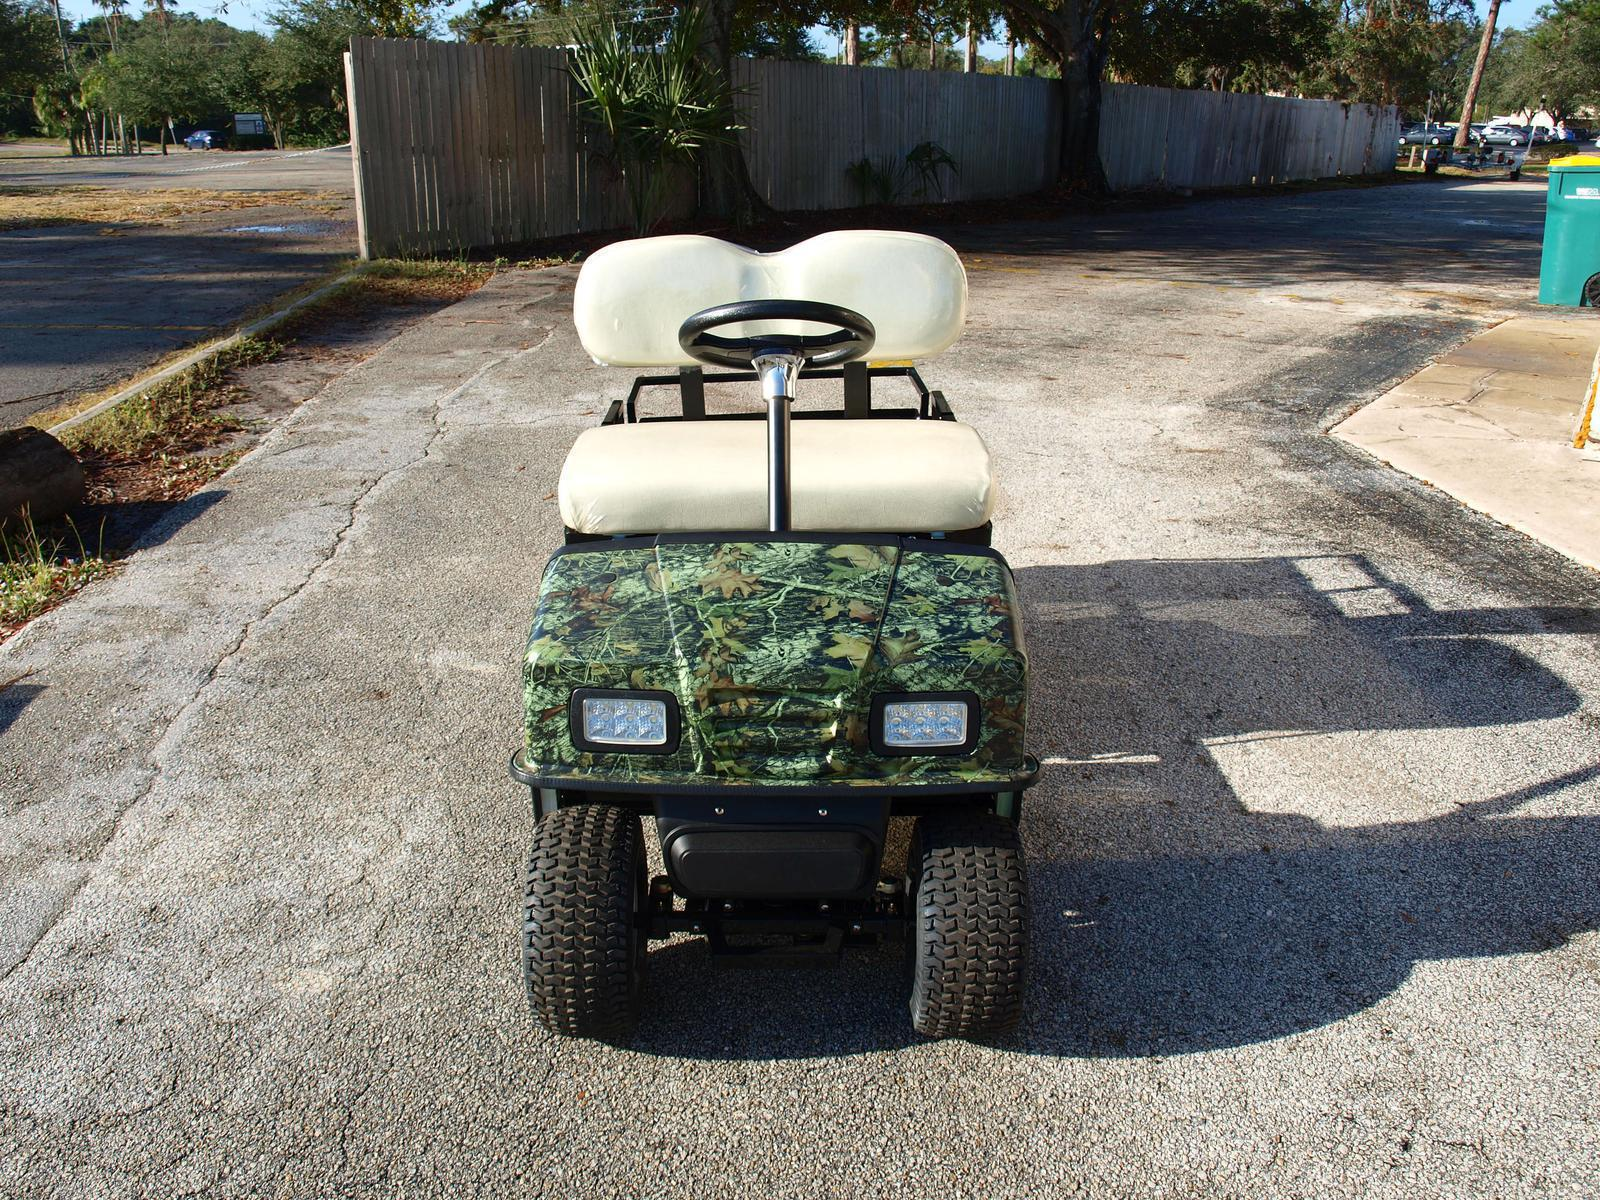 Mobility Handicap For Golf Carts on mobility golf carts, handicap golf carts, senior mobility carts, medical mobility carts,